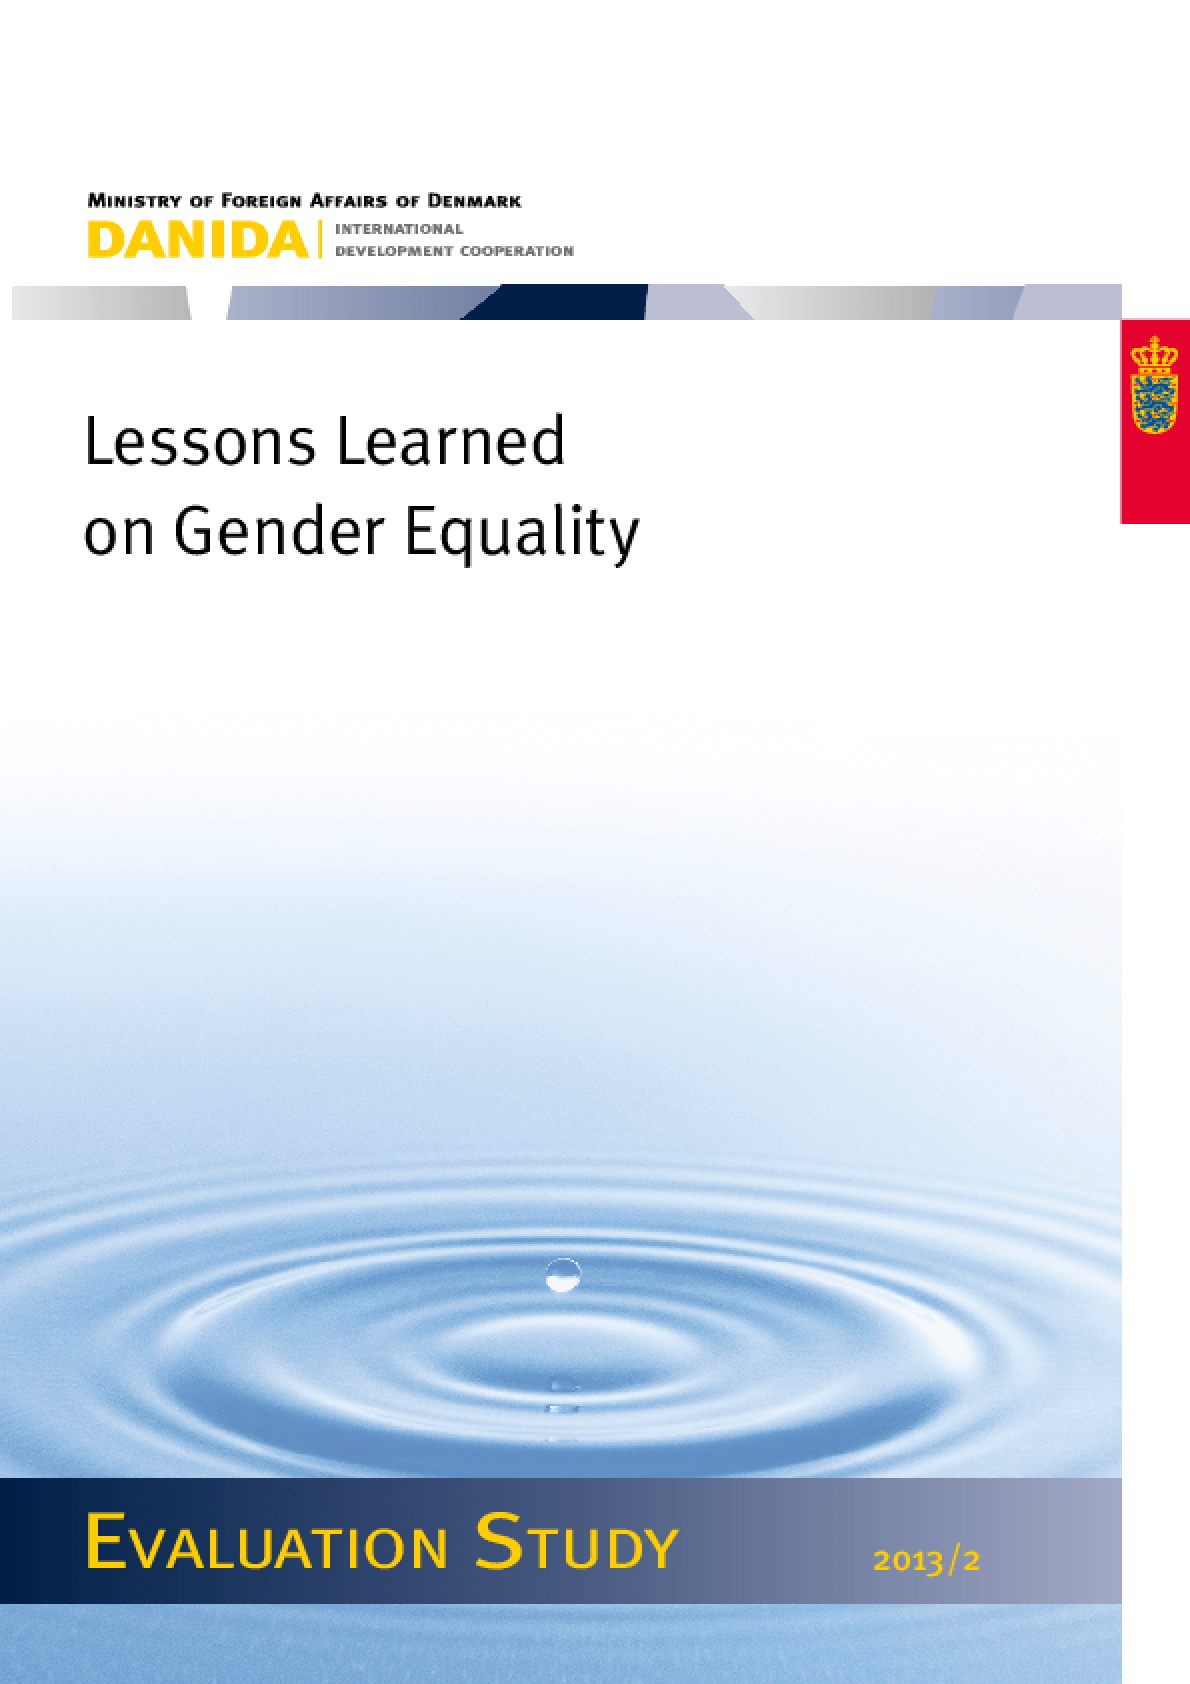 Lessons Learned on Gender Equality